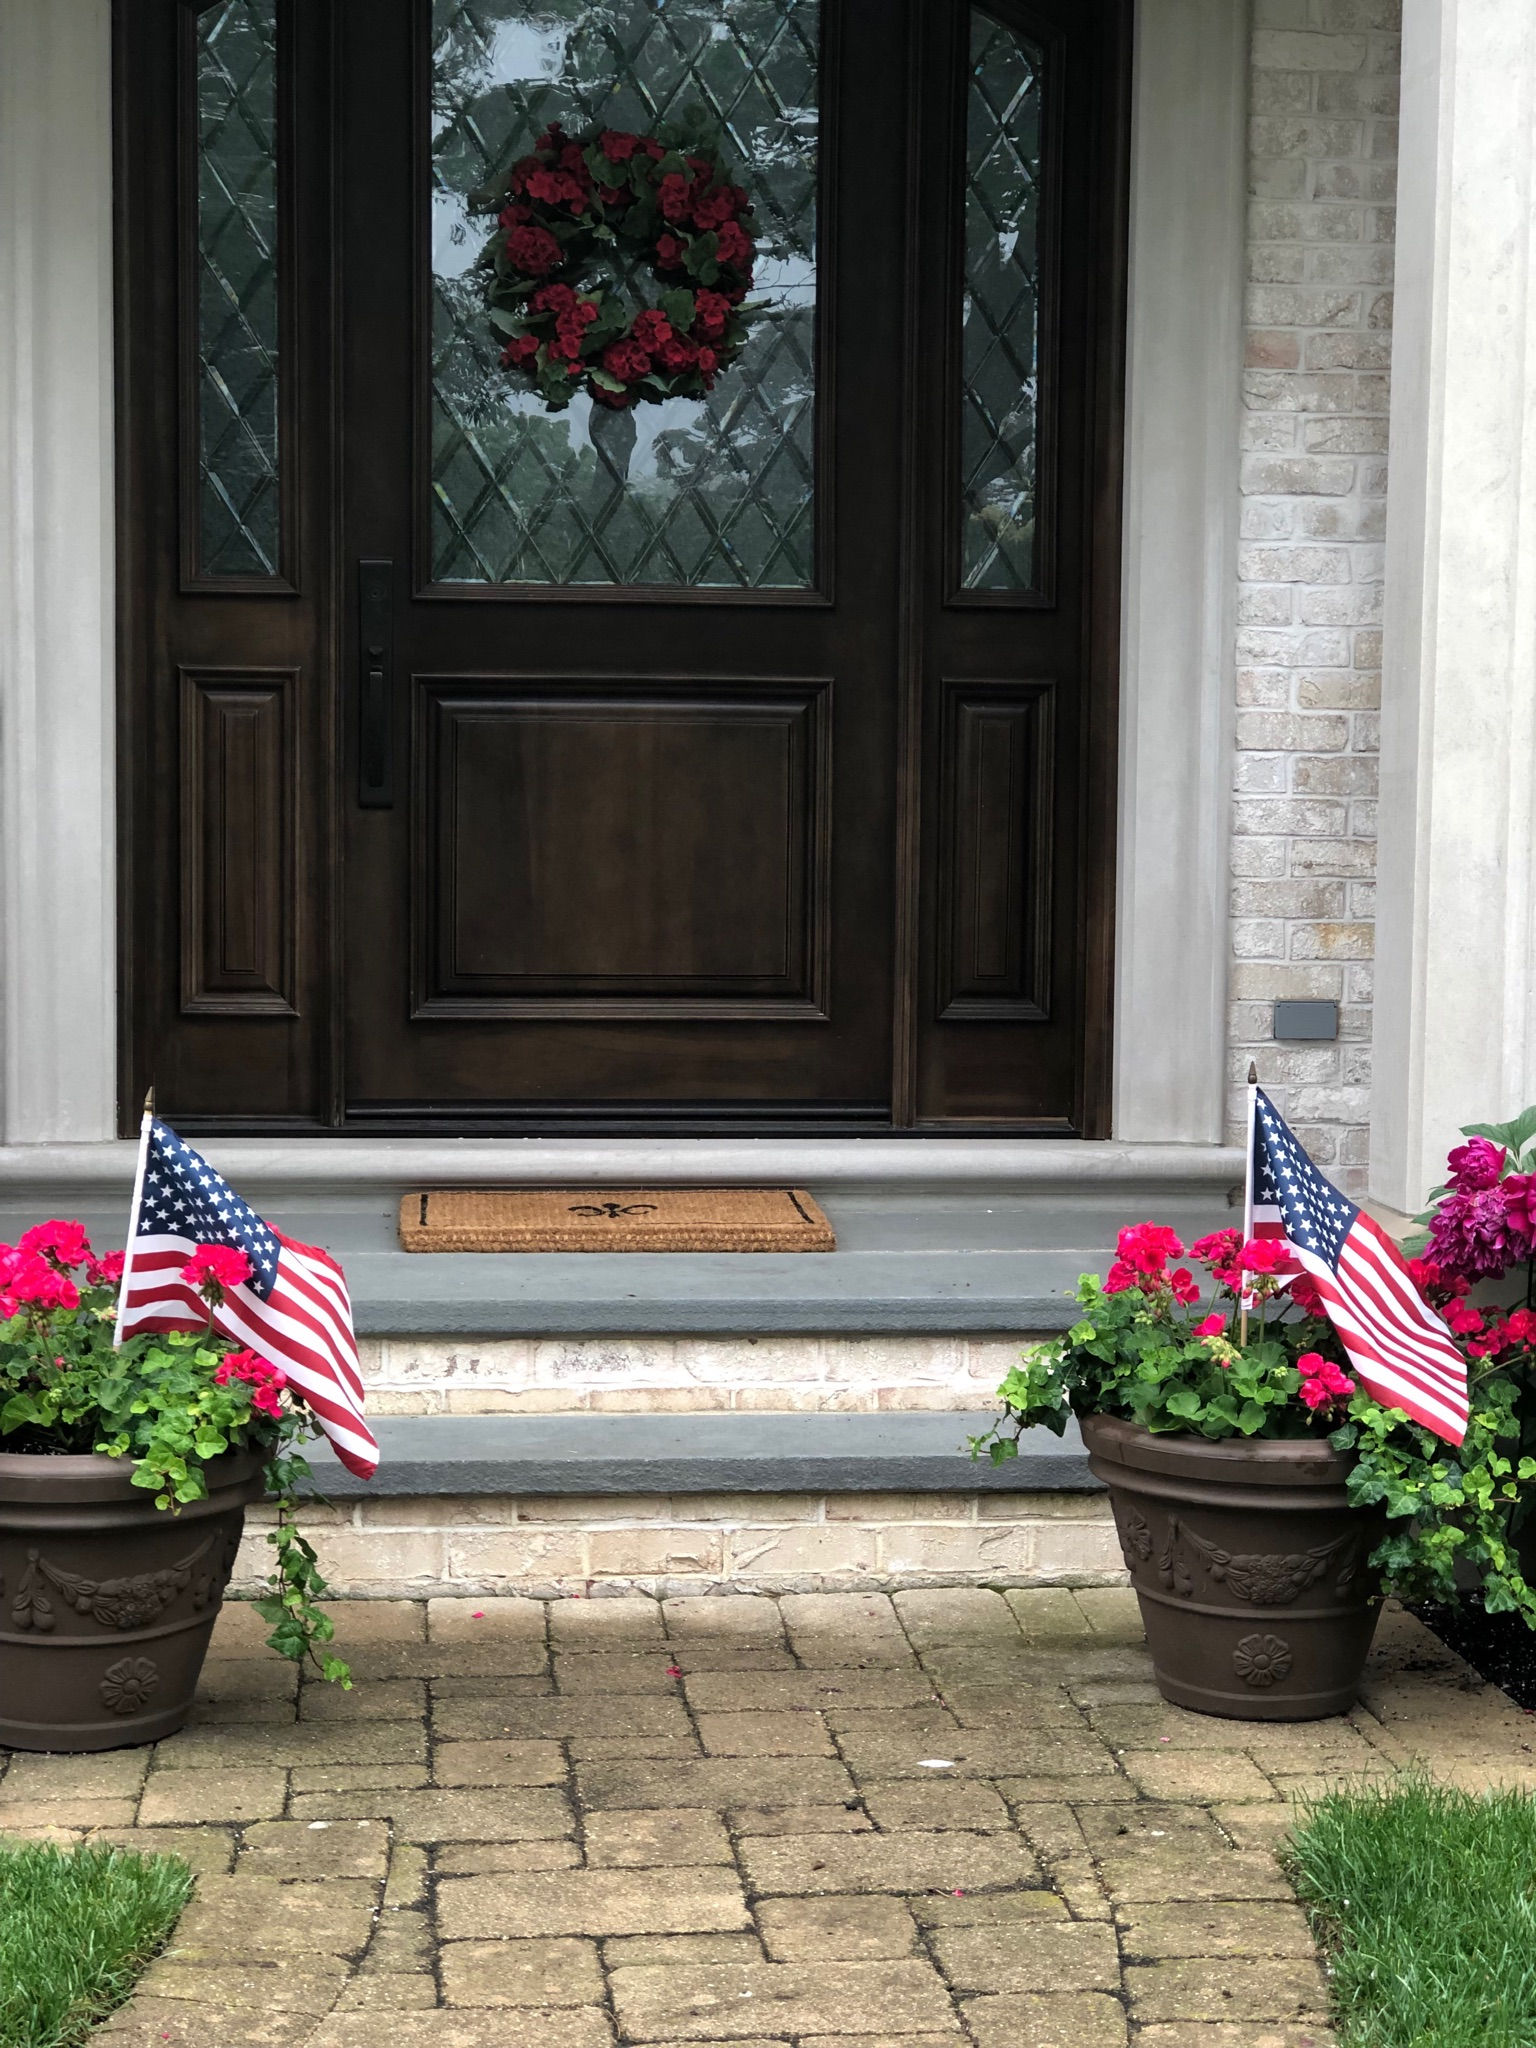 Red, White And Blue - Dr. Julie Marshall5.jpeg